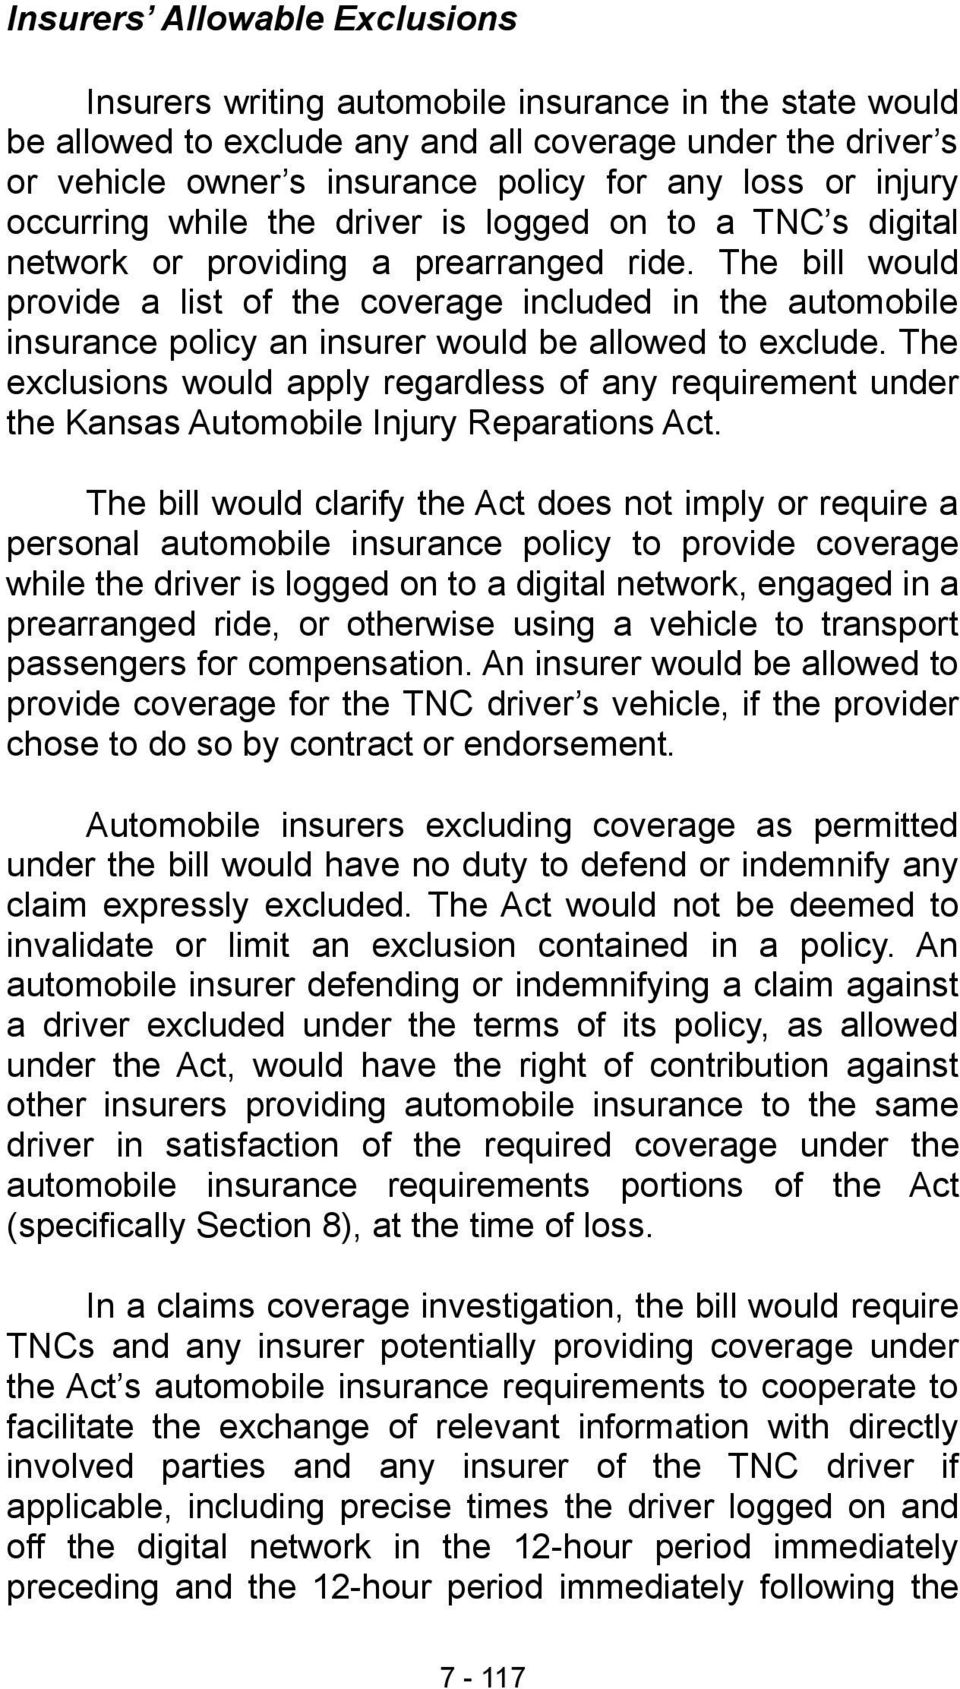 The bill would provide a list of the coverage included in the automobile insurance policy an insurer would be allowed to exclude.